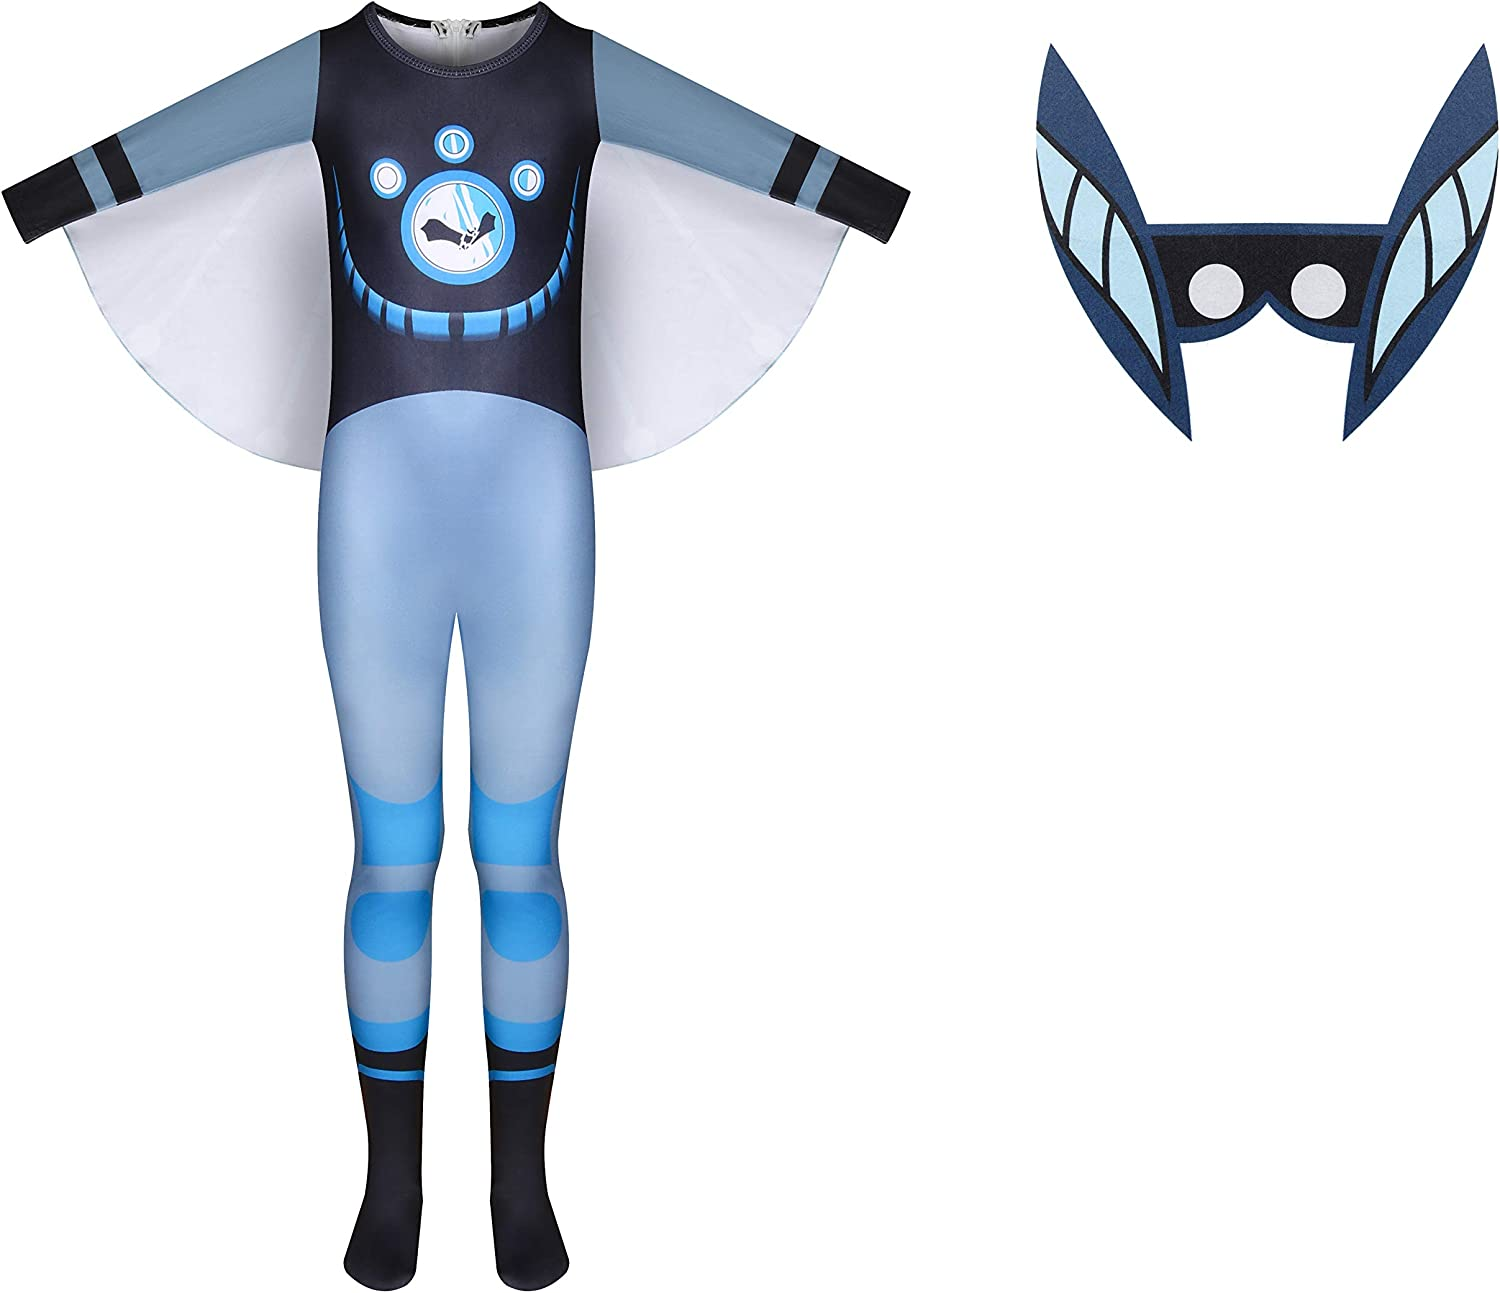 Fly Kid Wild KRA-tts Costumes for Boys,Kids Character Role Play Jumpsuit with Bat Face Accessory and Wings